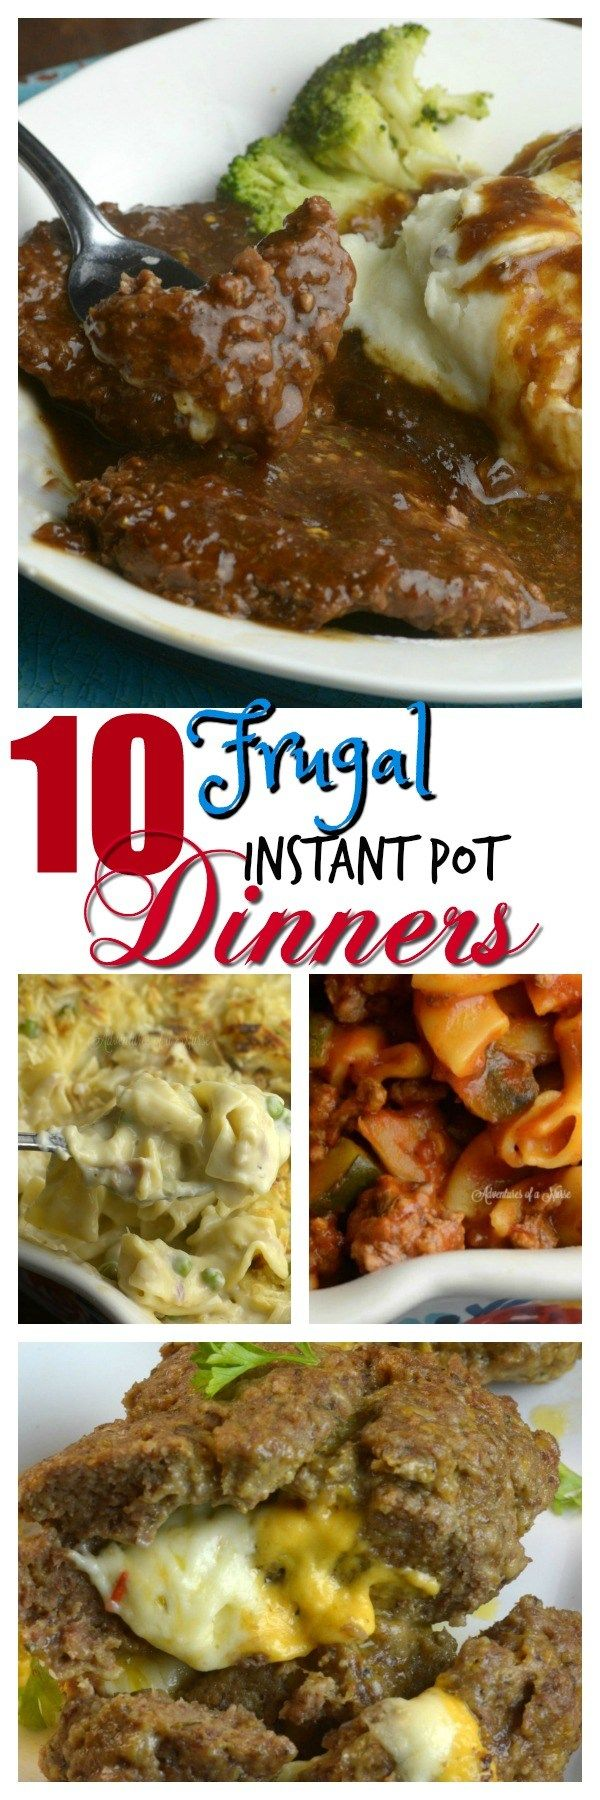 Share with friends     1  1Share10 Frugal Instant Pot Dinners One of the great things about having my Instant Pot is saving money on food. You can feed a family of 4 for $5-10.00. How amazing is that? Here is a list of my favorite Frugal Meals. Hamberger Helper That is right Homemade Hamberger Helper a full meal for …